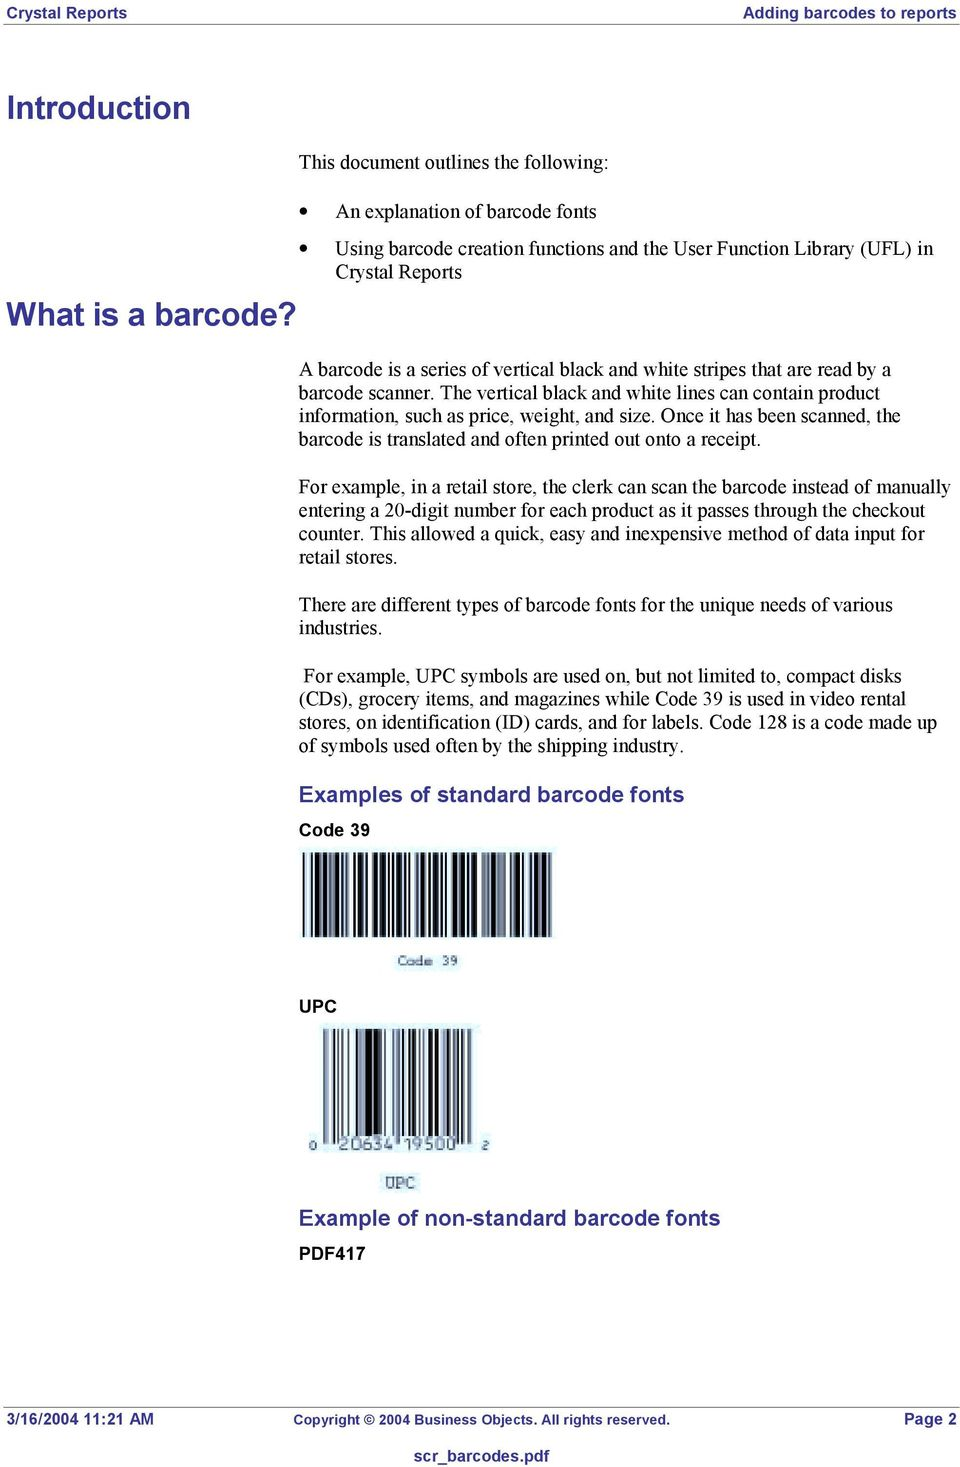 Crystal Reports  Overview  Contents  Adding barcodes to